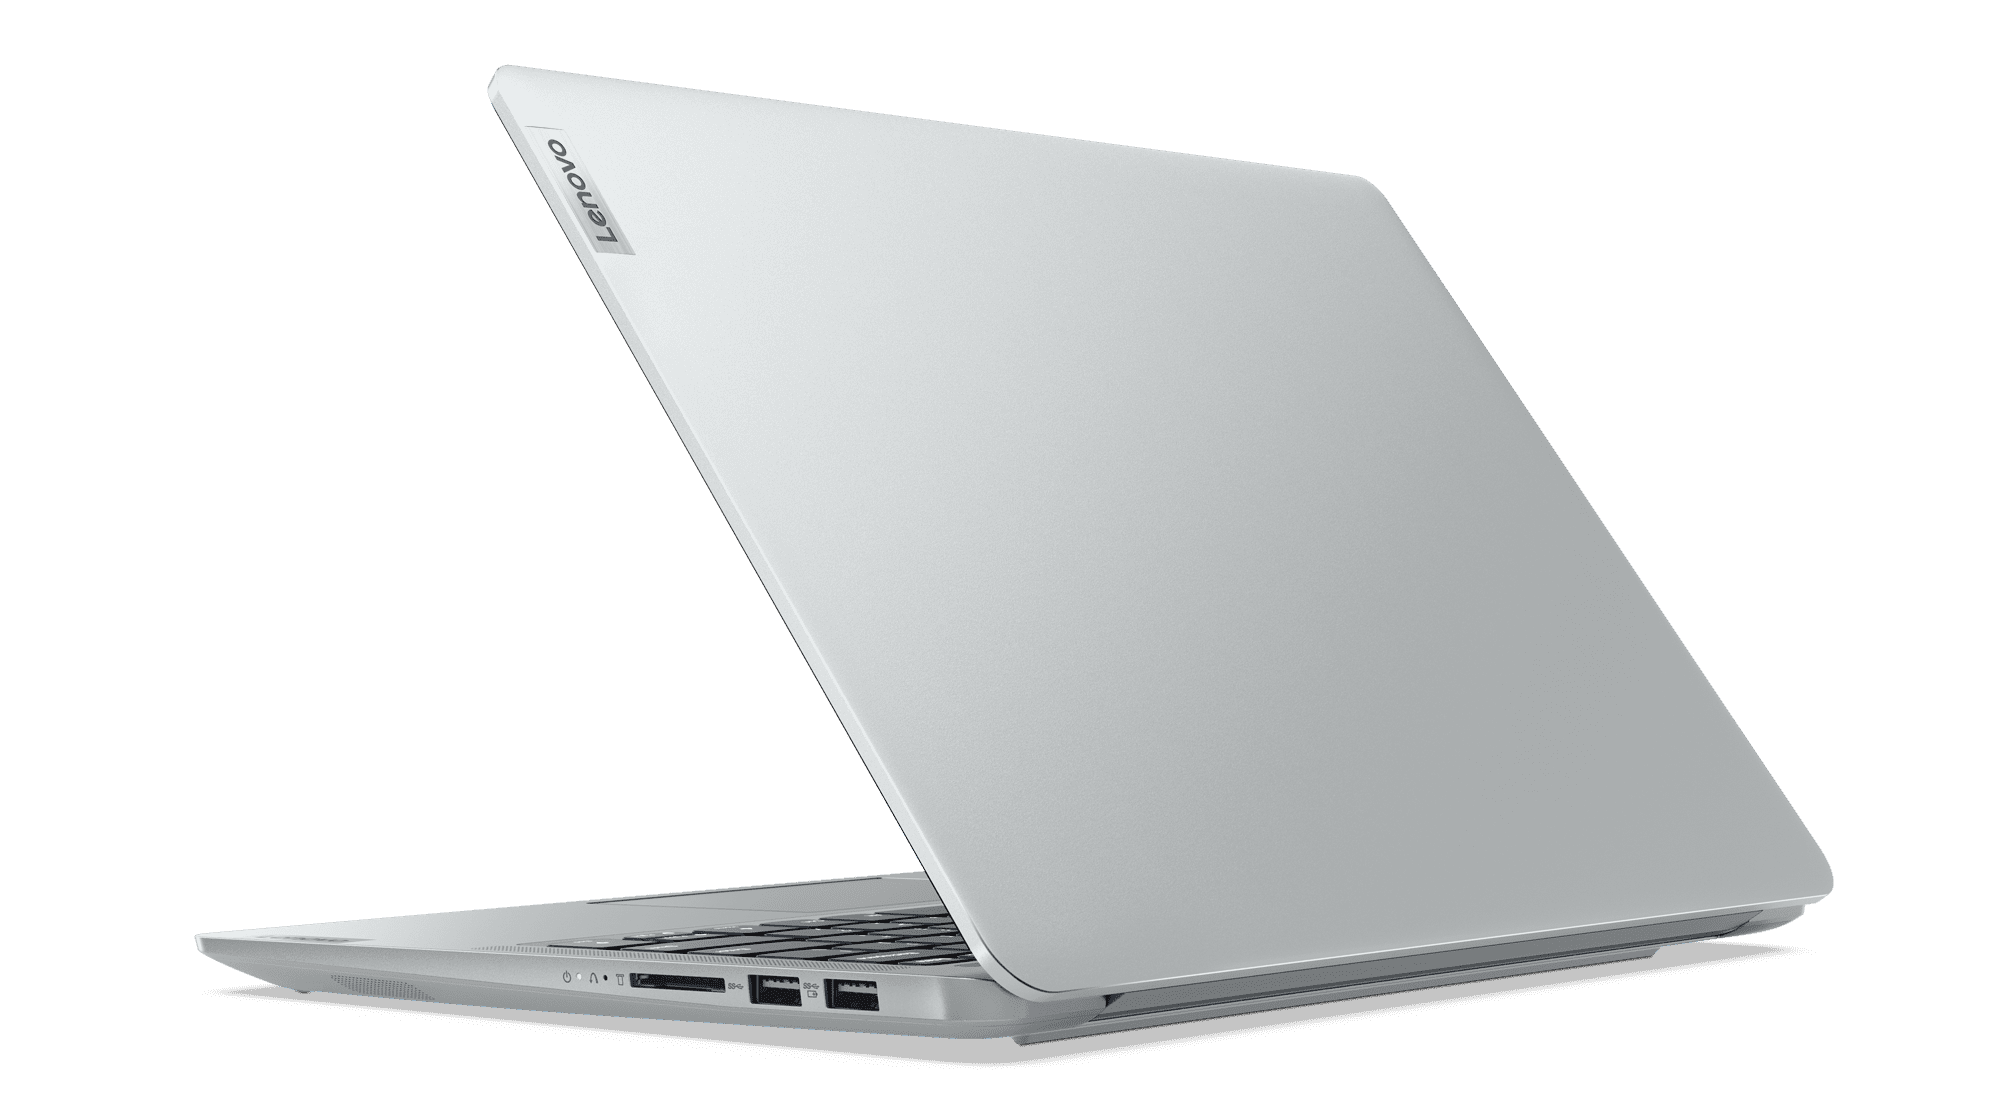 The 14-inch IdeaPad 5i Pro with Intel CPU in Cloud Grey